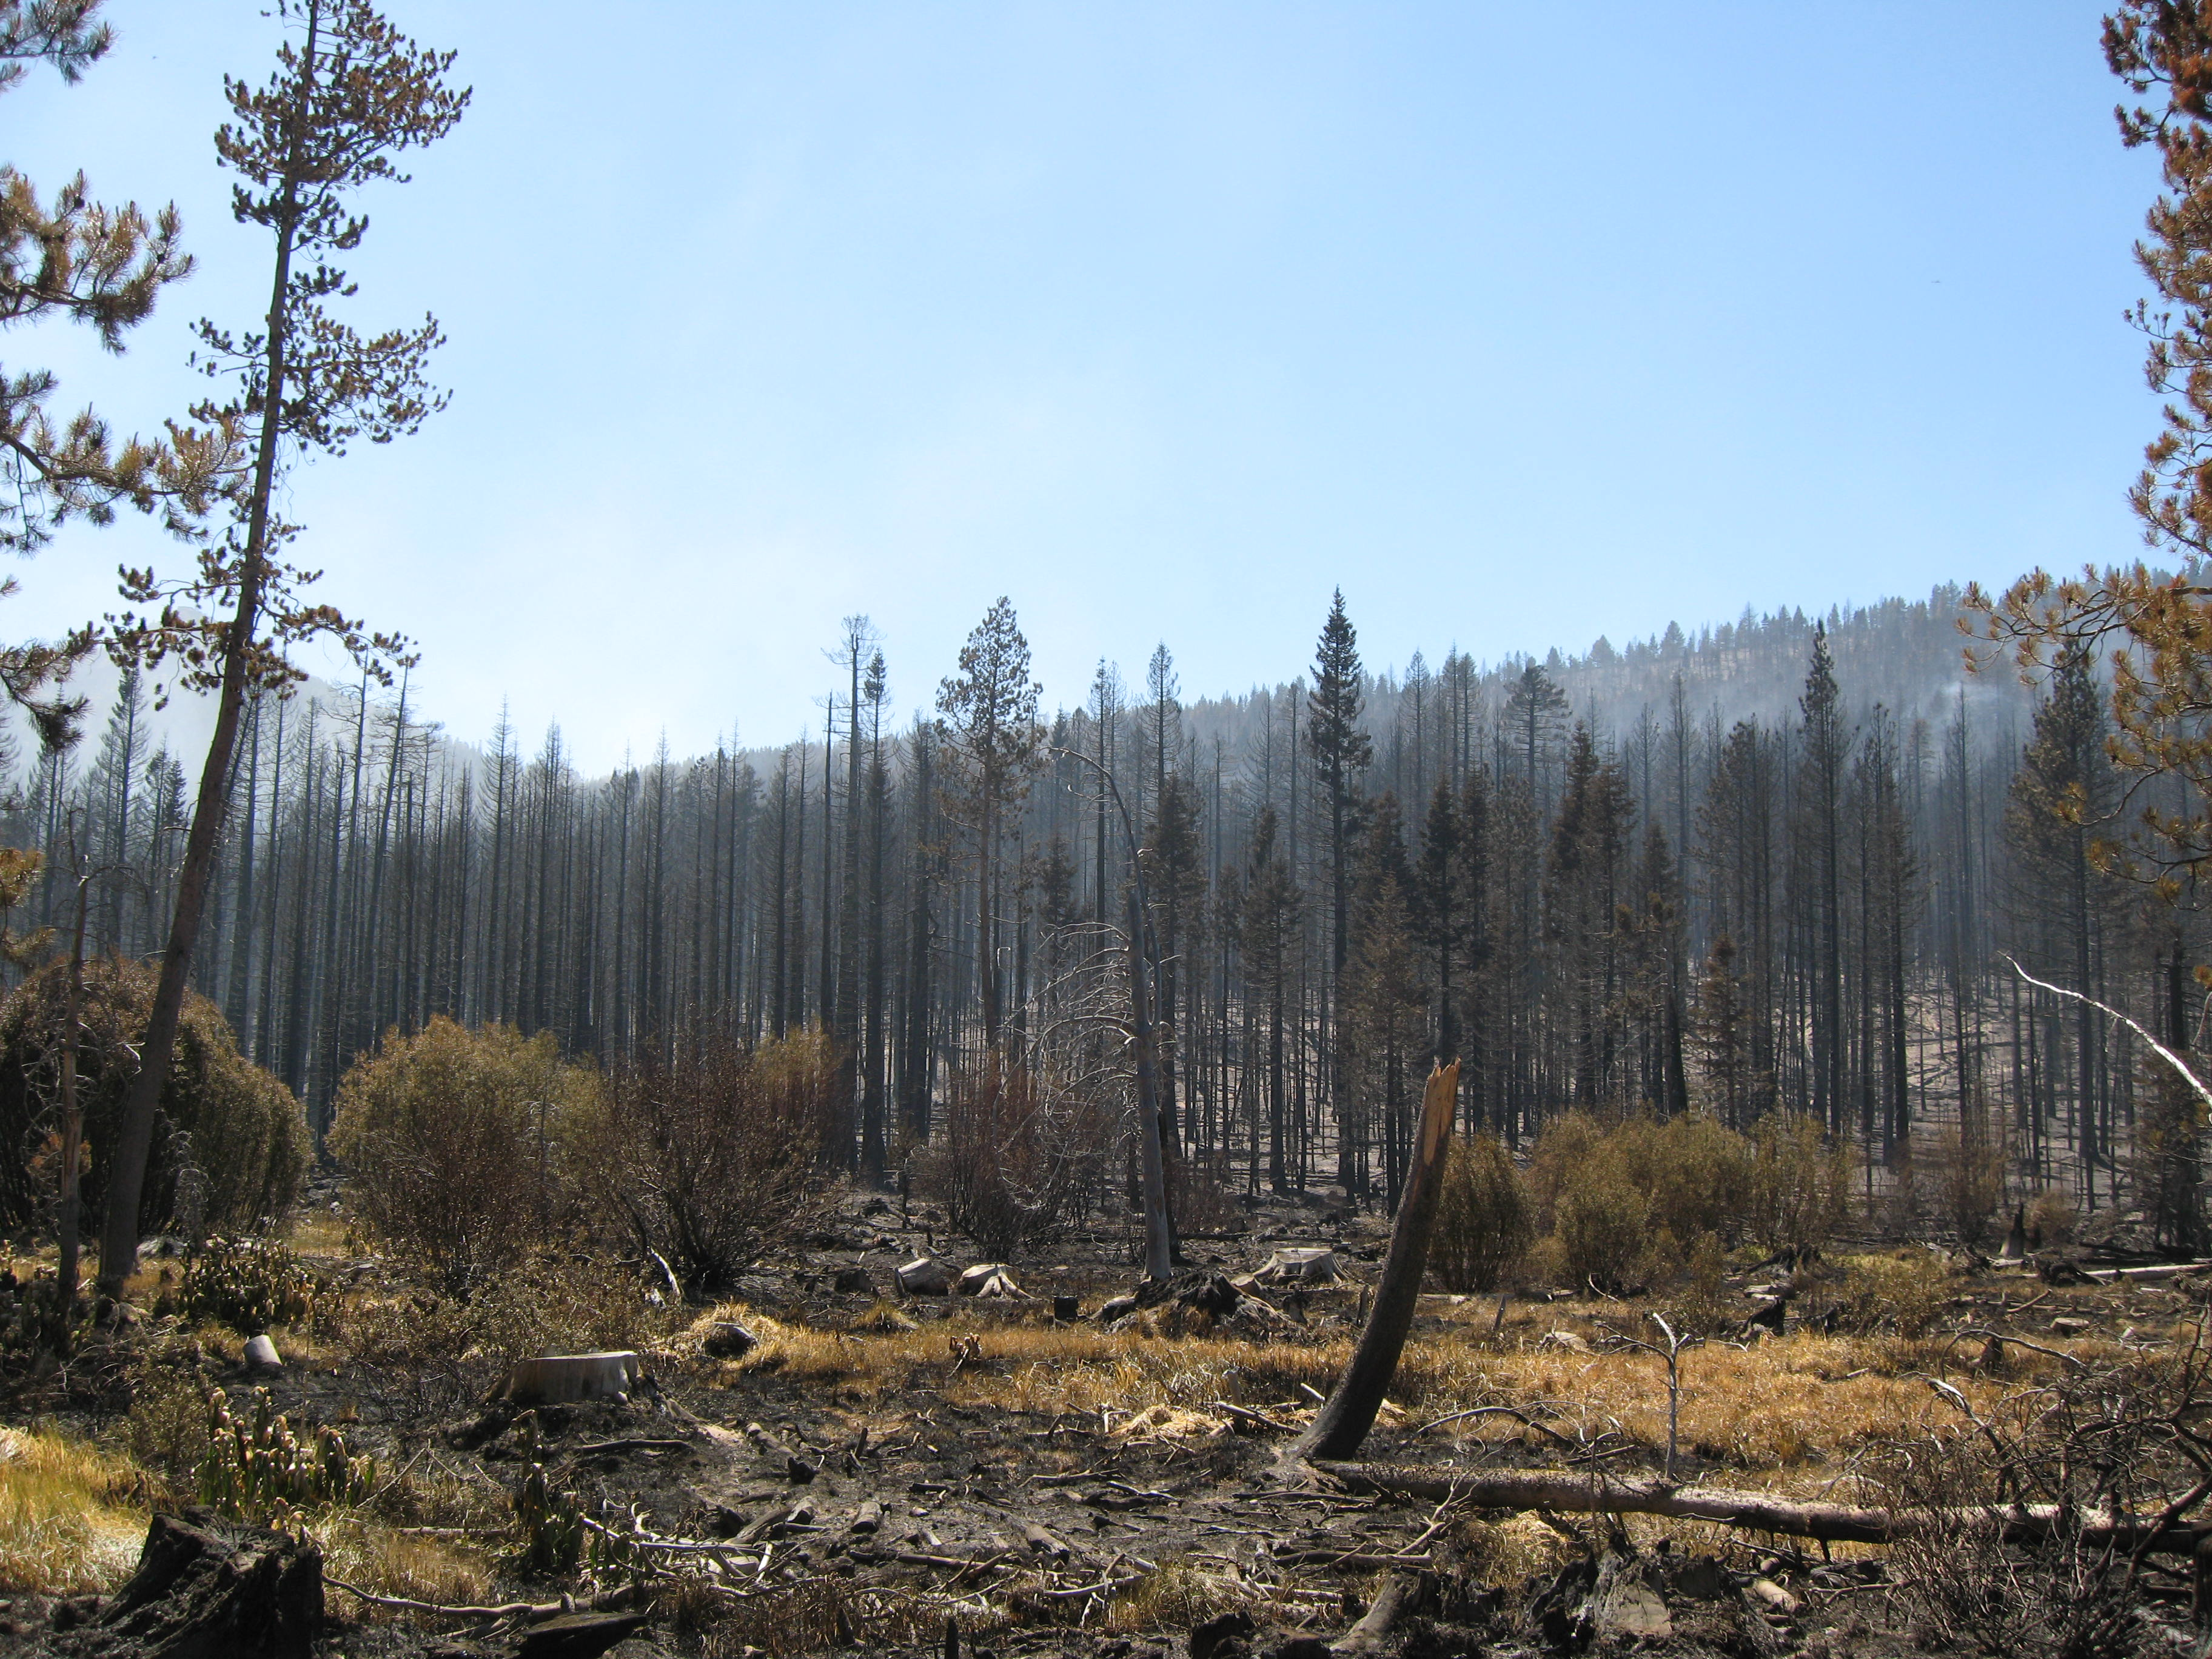 Stand of trees burned in the Angora Fire